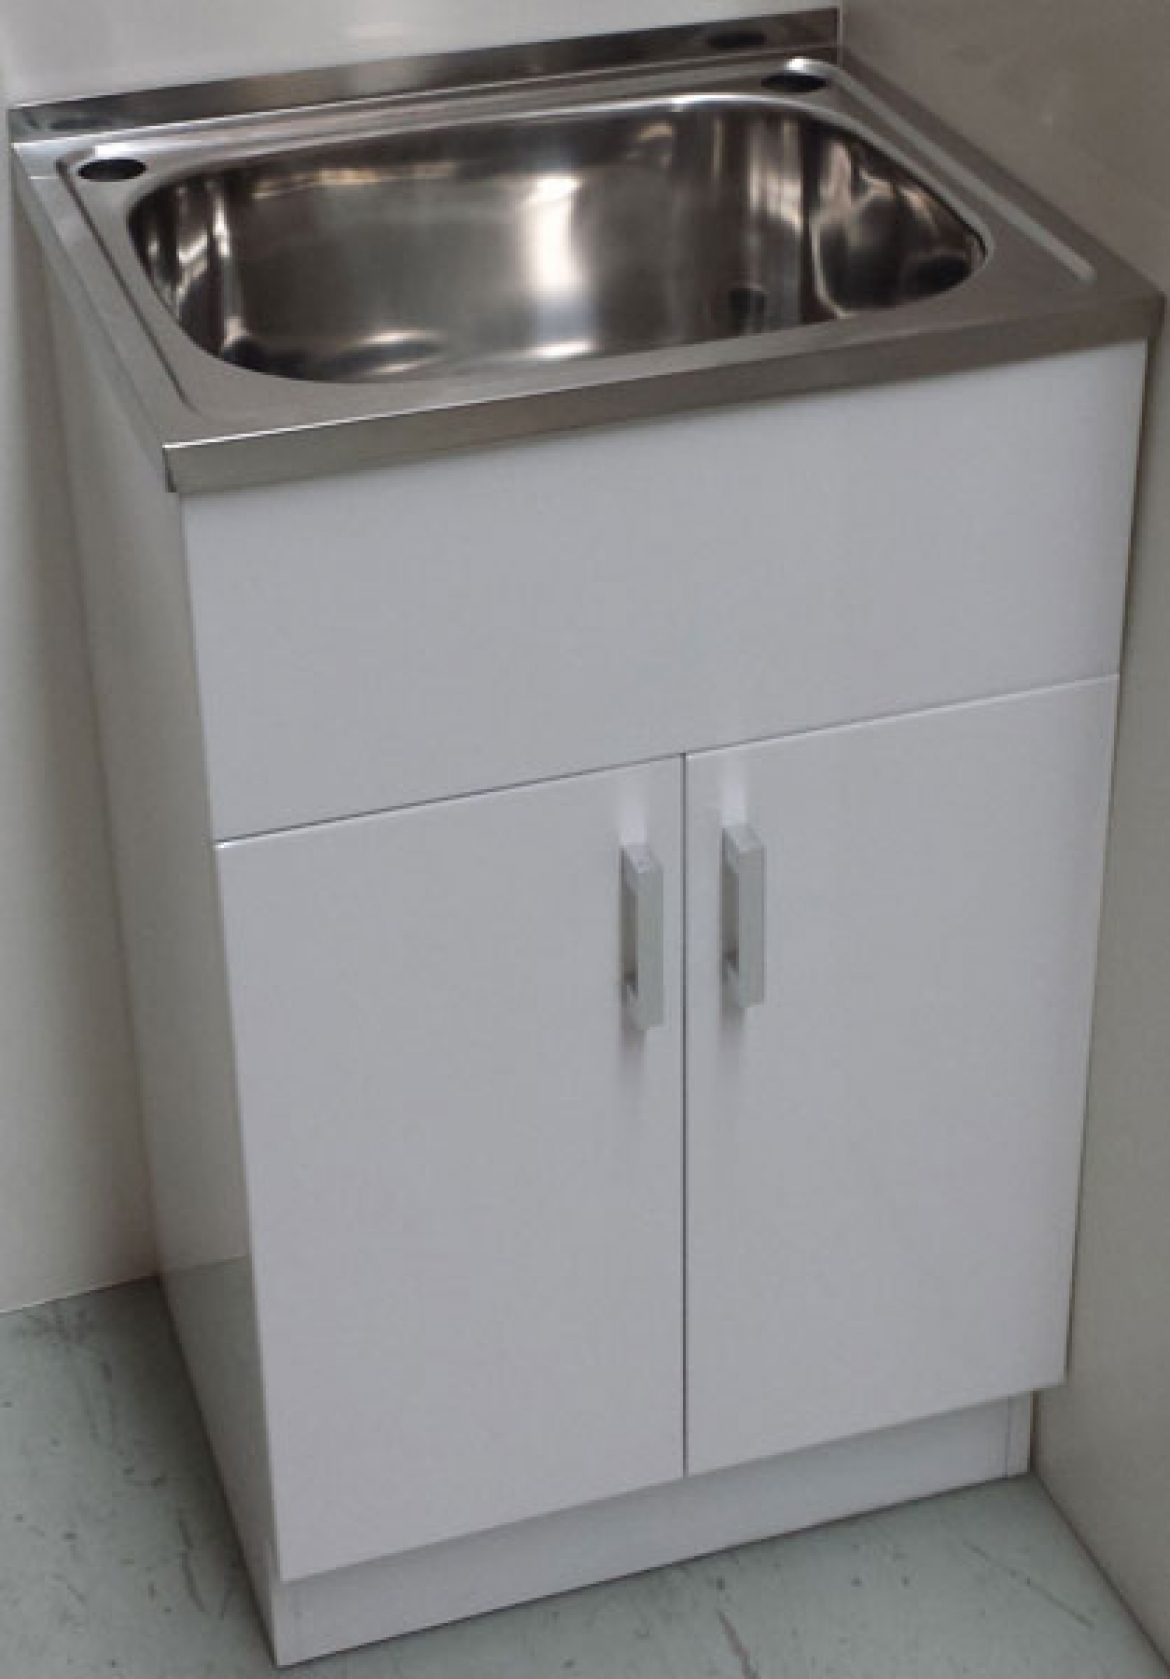 35L laundry sink with cabinet [ 2 doors]